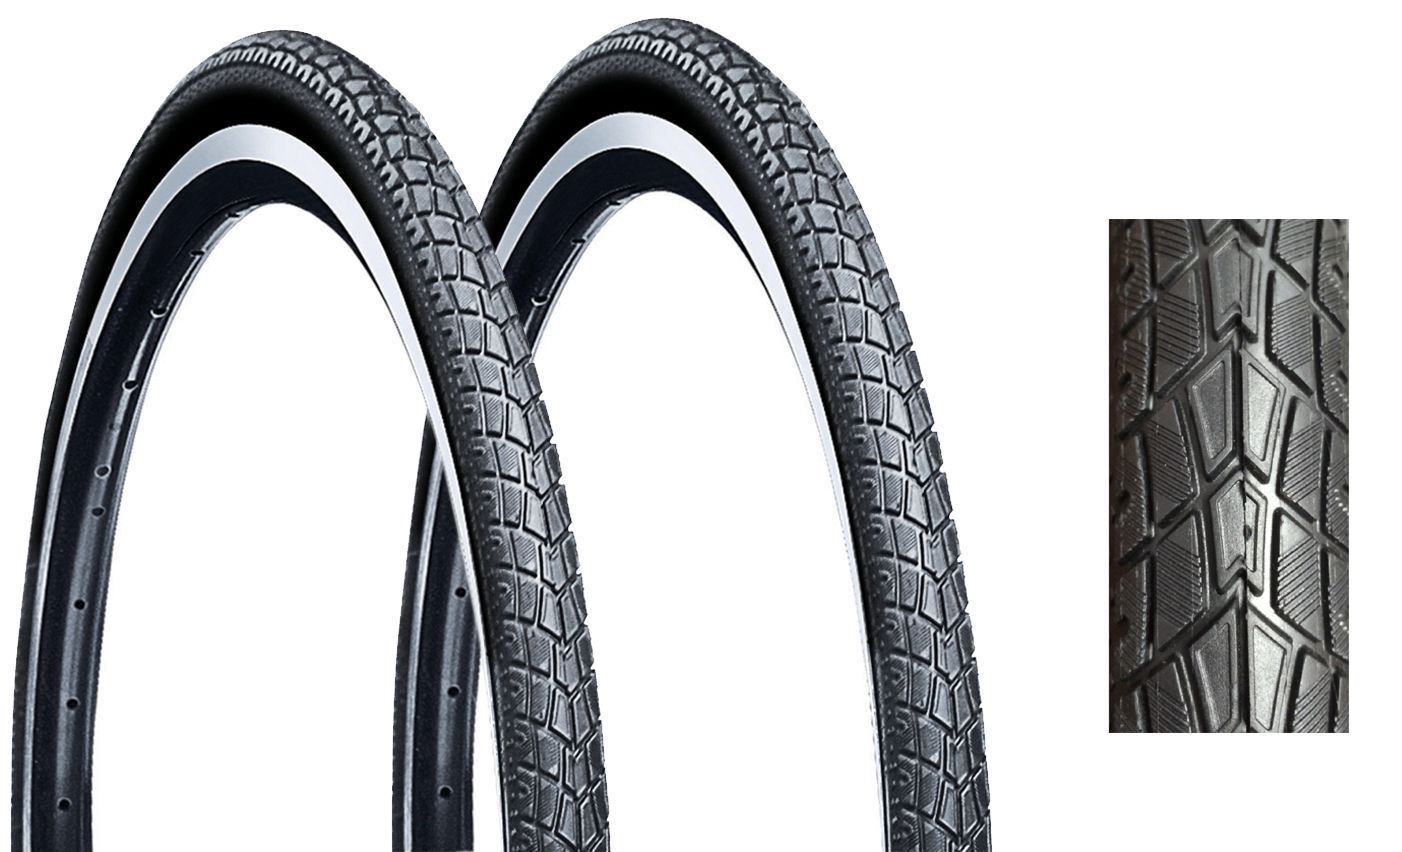 Dakota 26 X 1 50 Touring Road Mountain Bike Bicycle Tyre Tube Deals From 6 49 Ebay 9 99 Pair Road Mountain Bike Bicycle Tires Bike Wheel